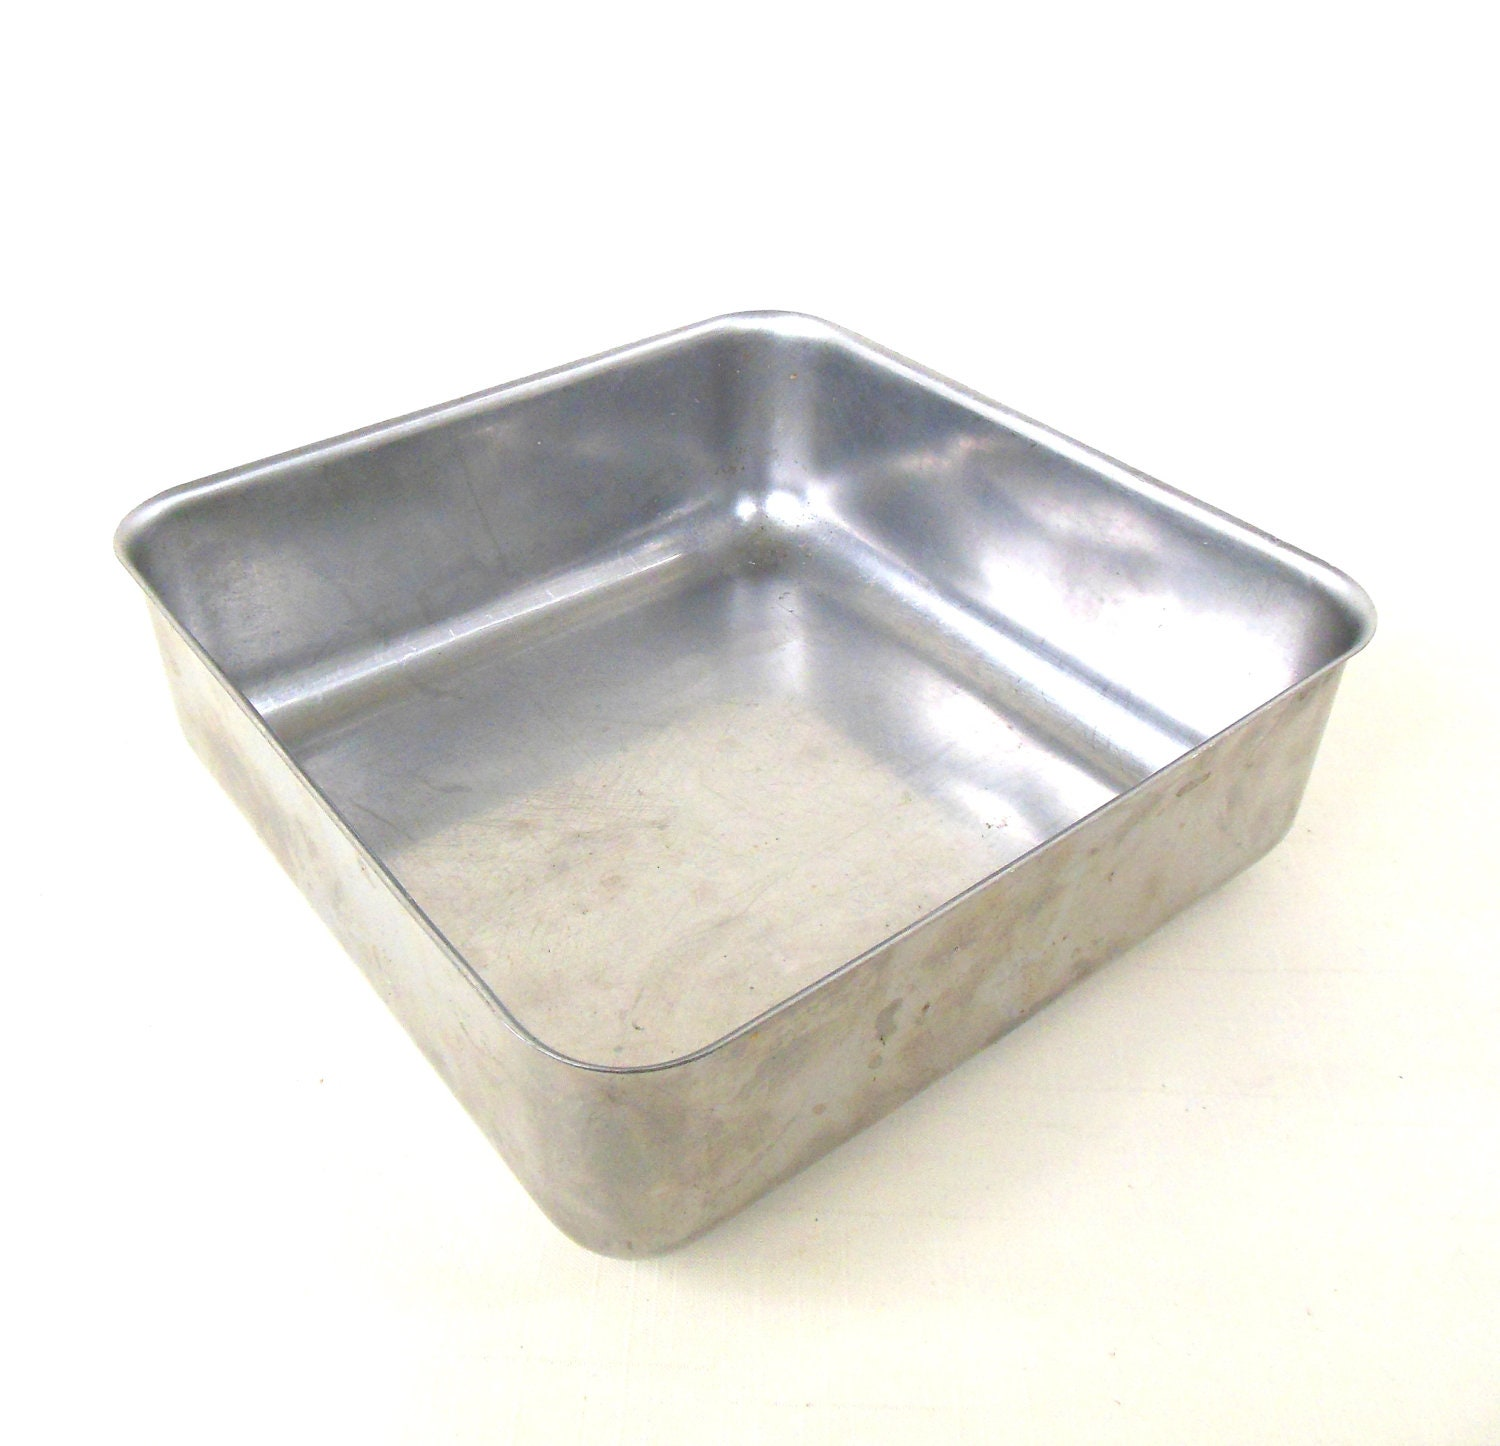 Stainless Steel Cake Pan Square 7.5 x 2.5 possibly